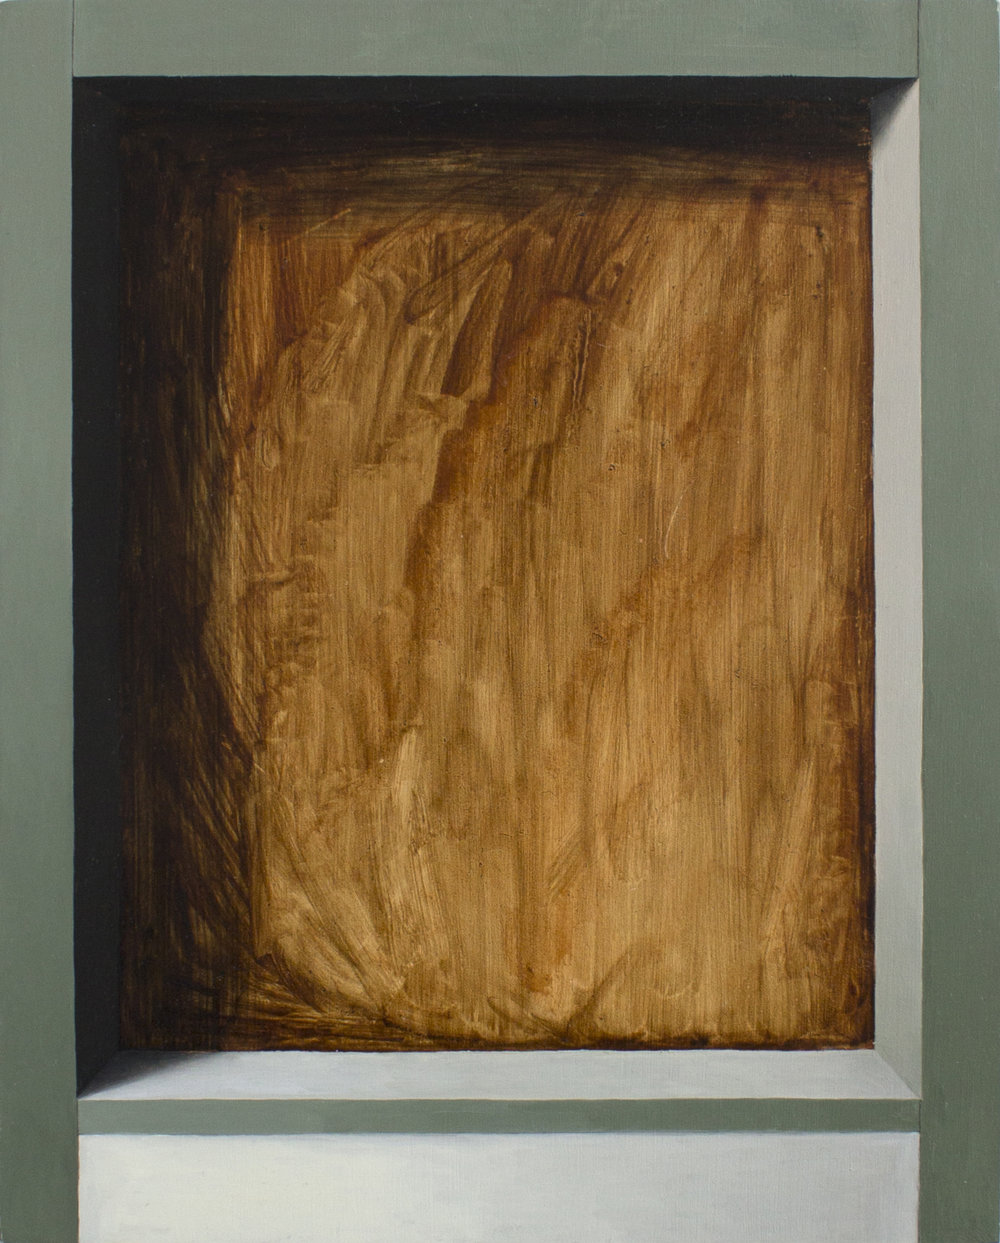 Exposed Interior No. 1   2017  Oil on wood panel  10 x 8 in